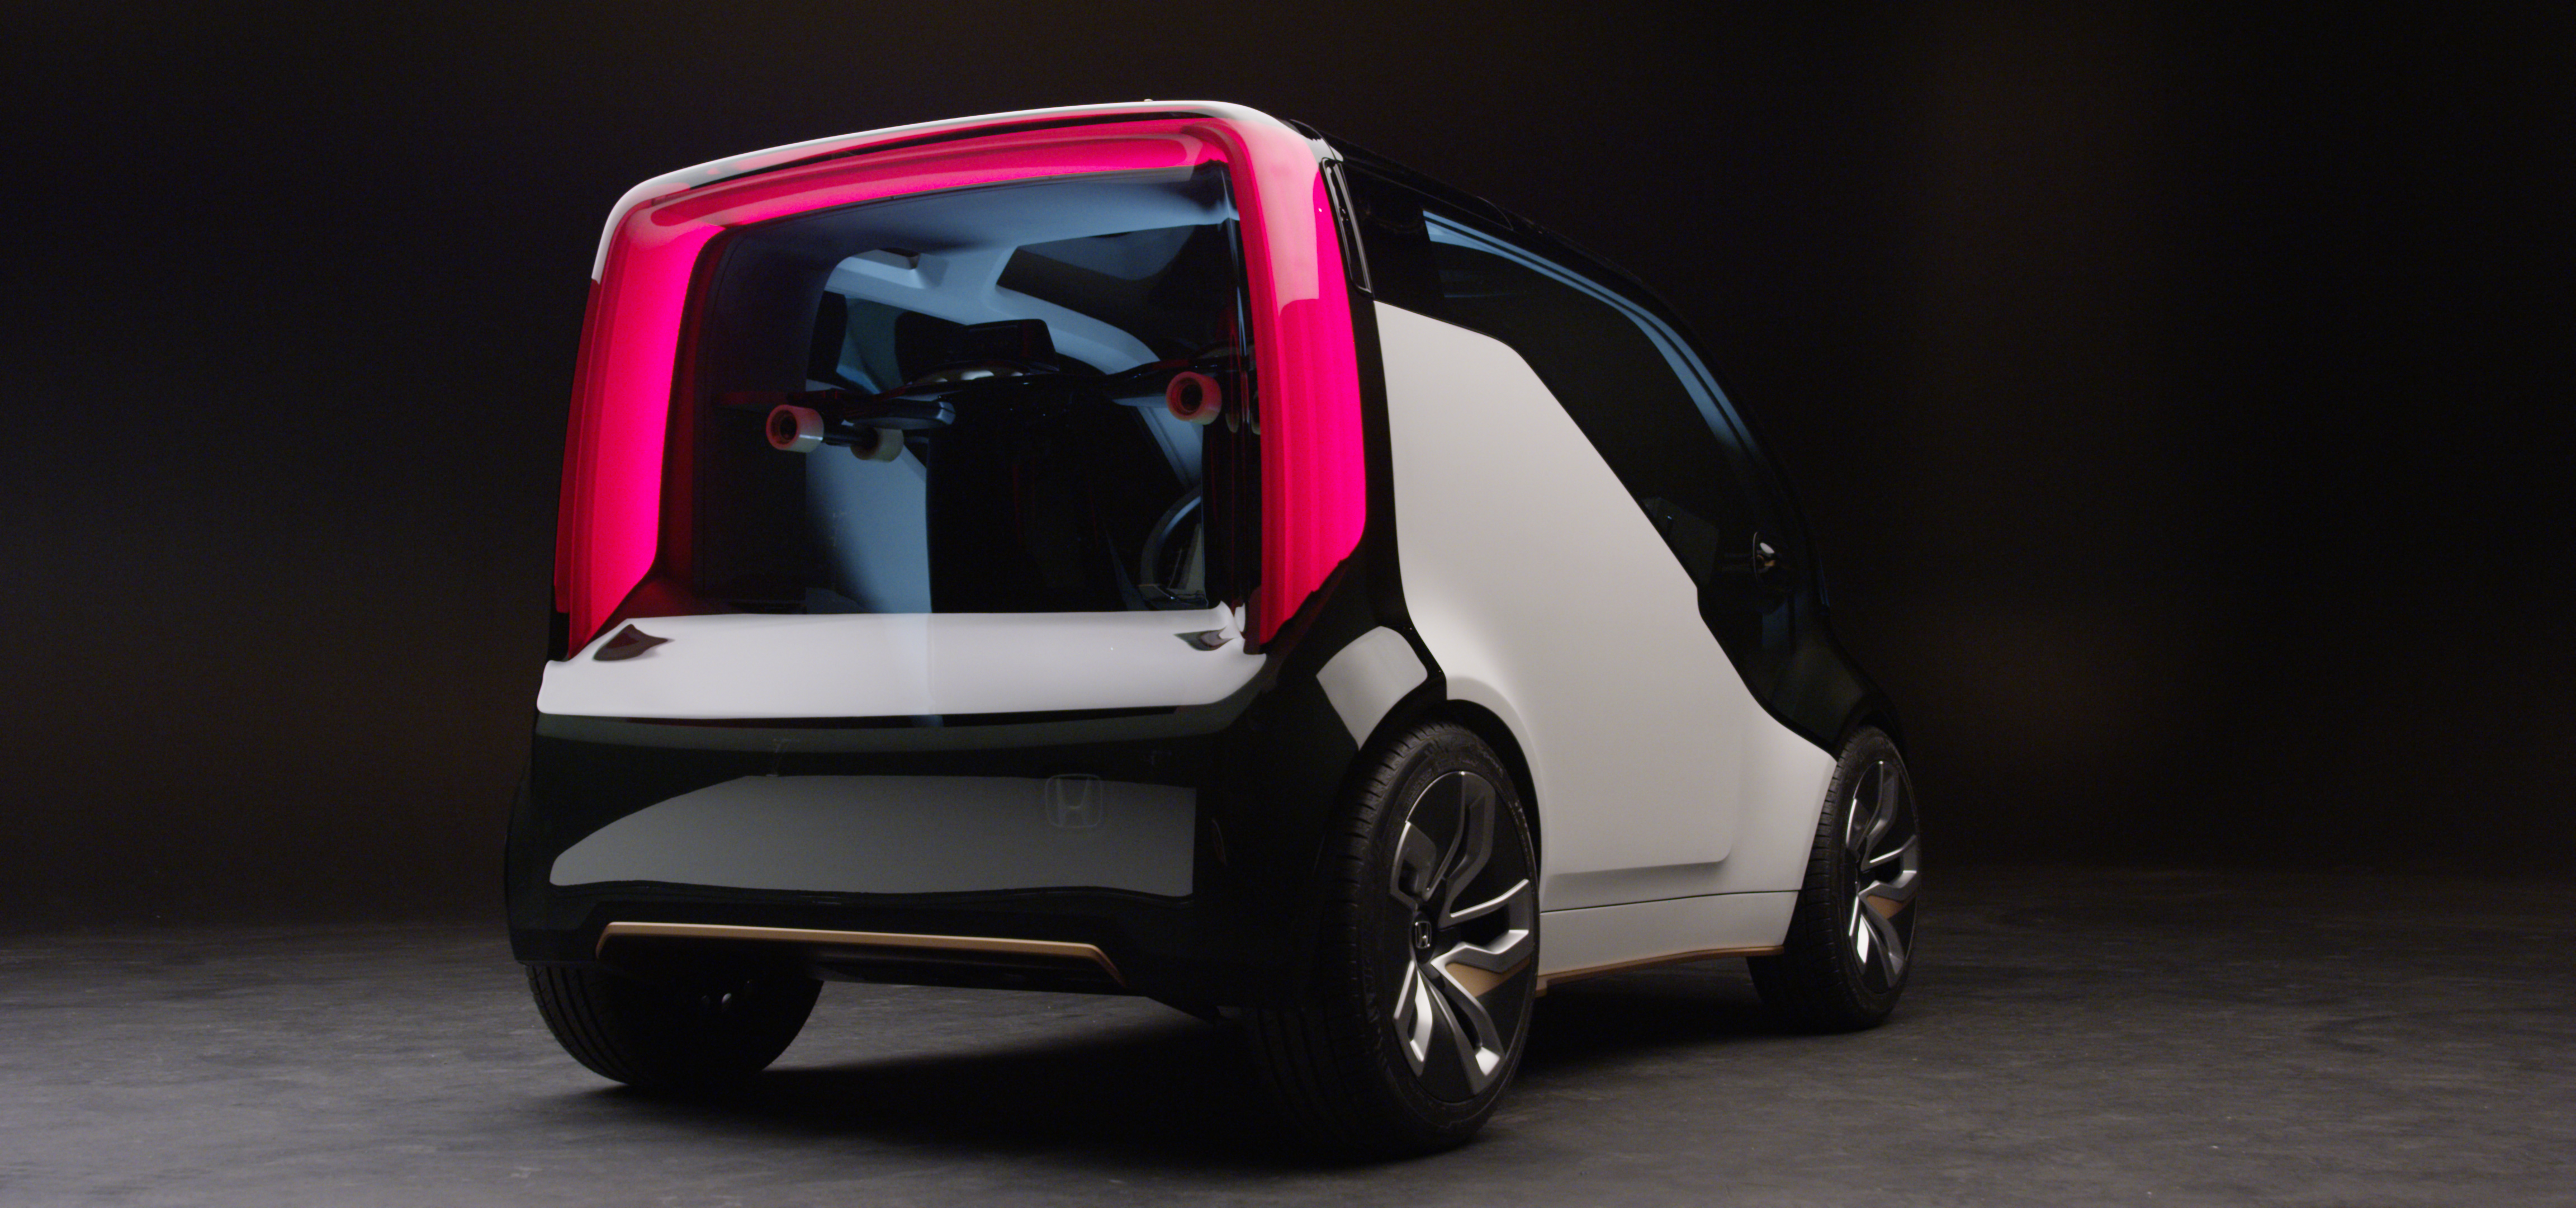 Honda unveils first electric ridesharing concept car  The Verge